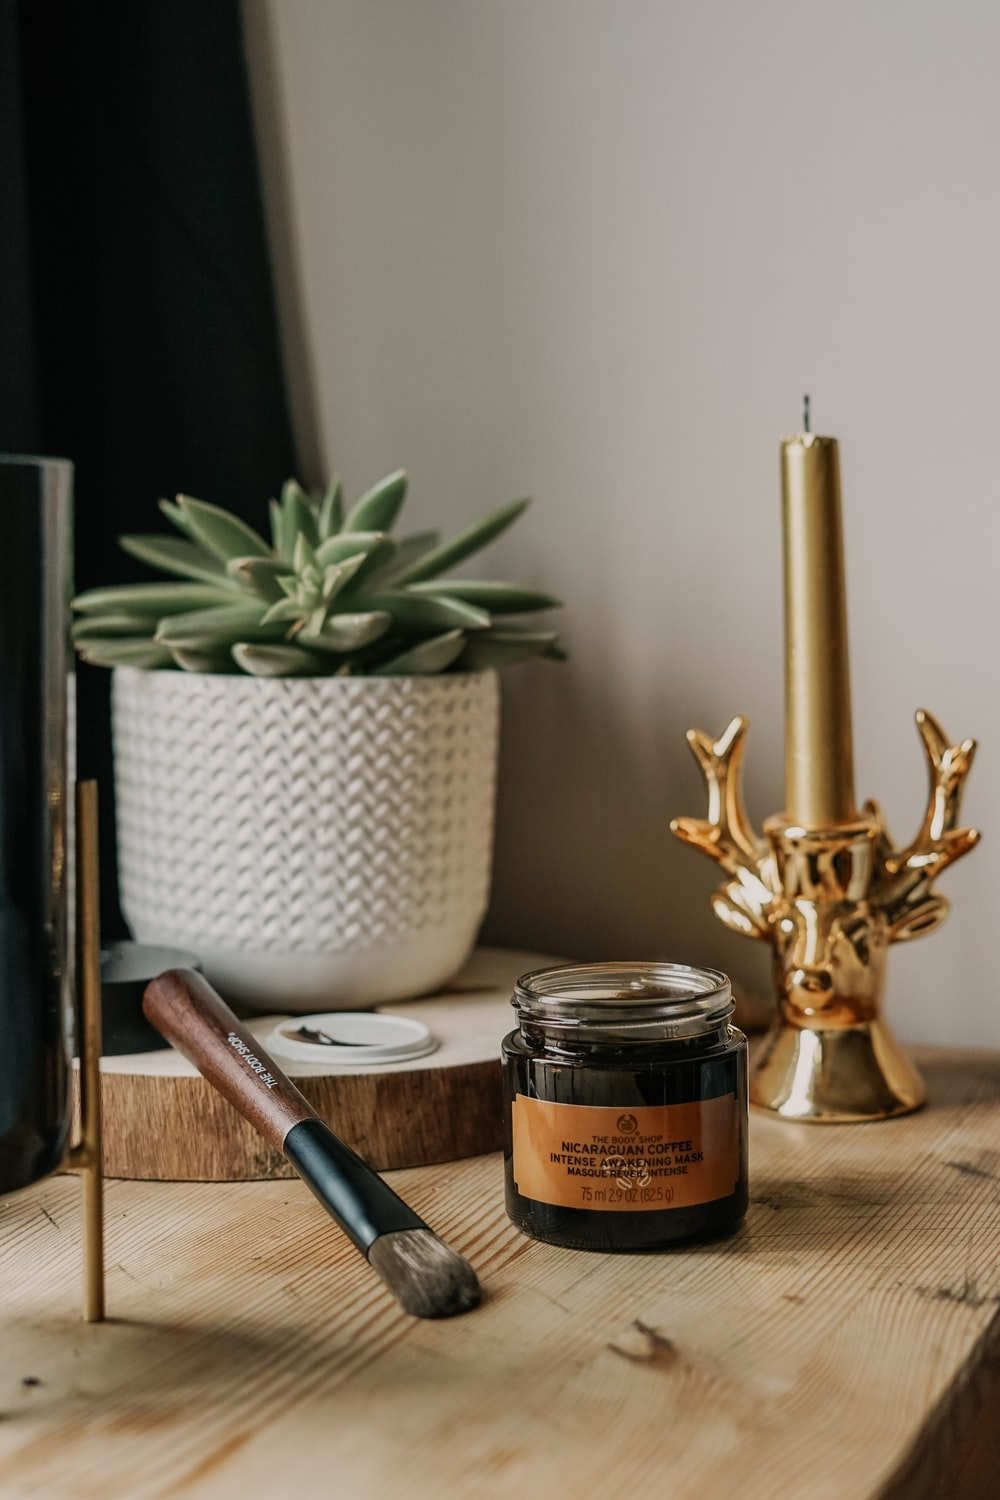 glass jar beside brown paint brush on table